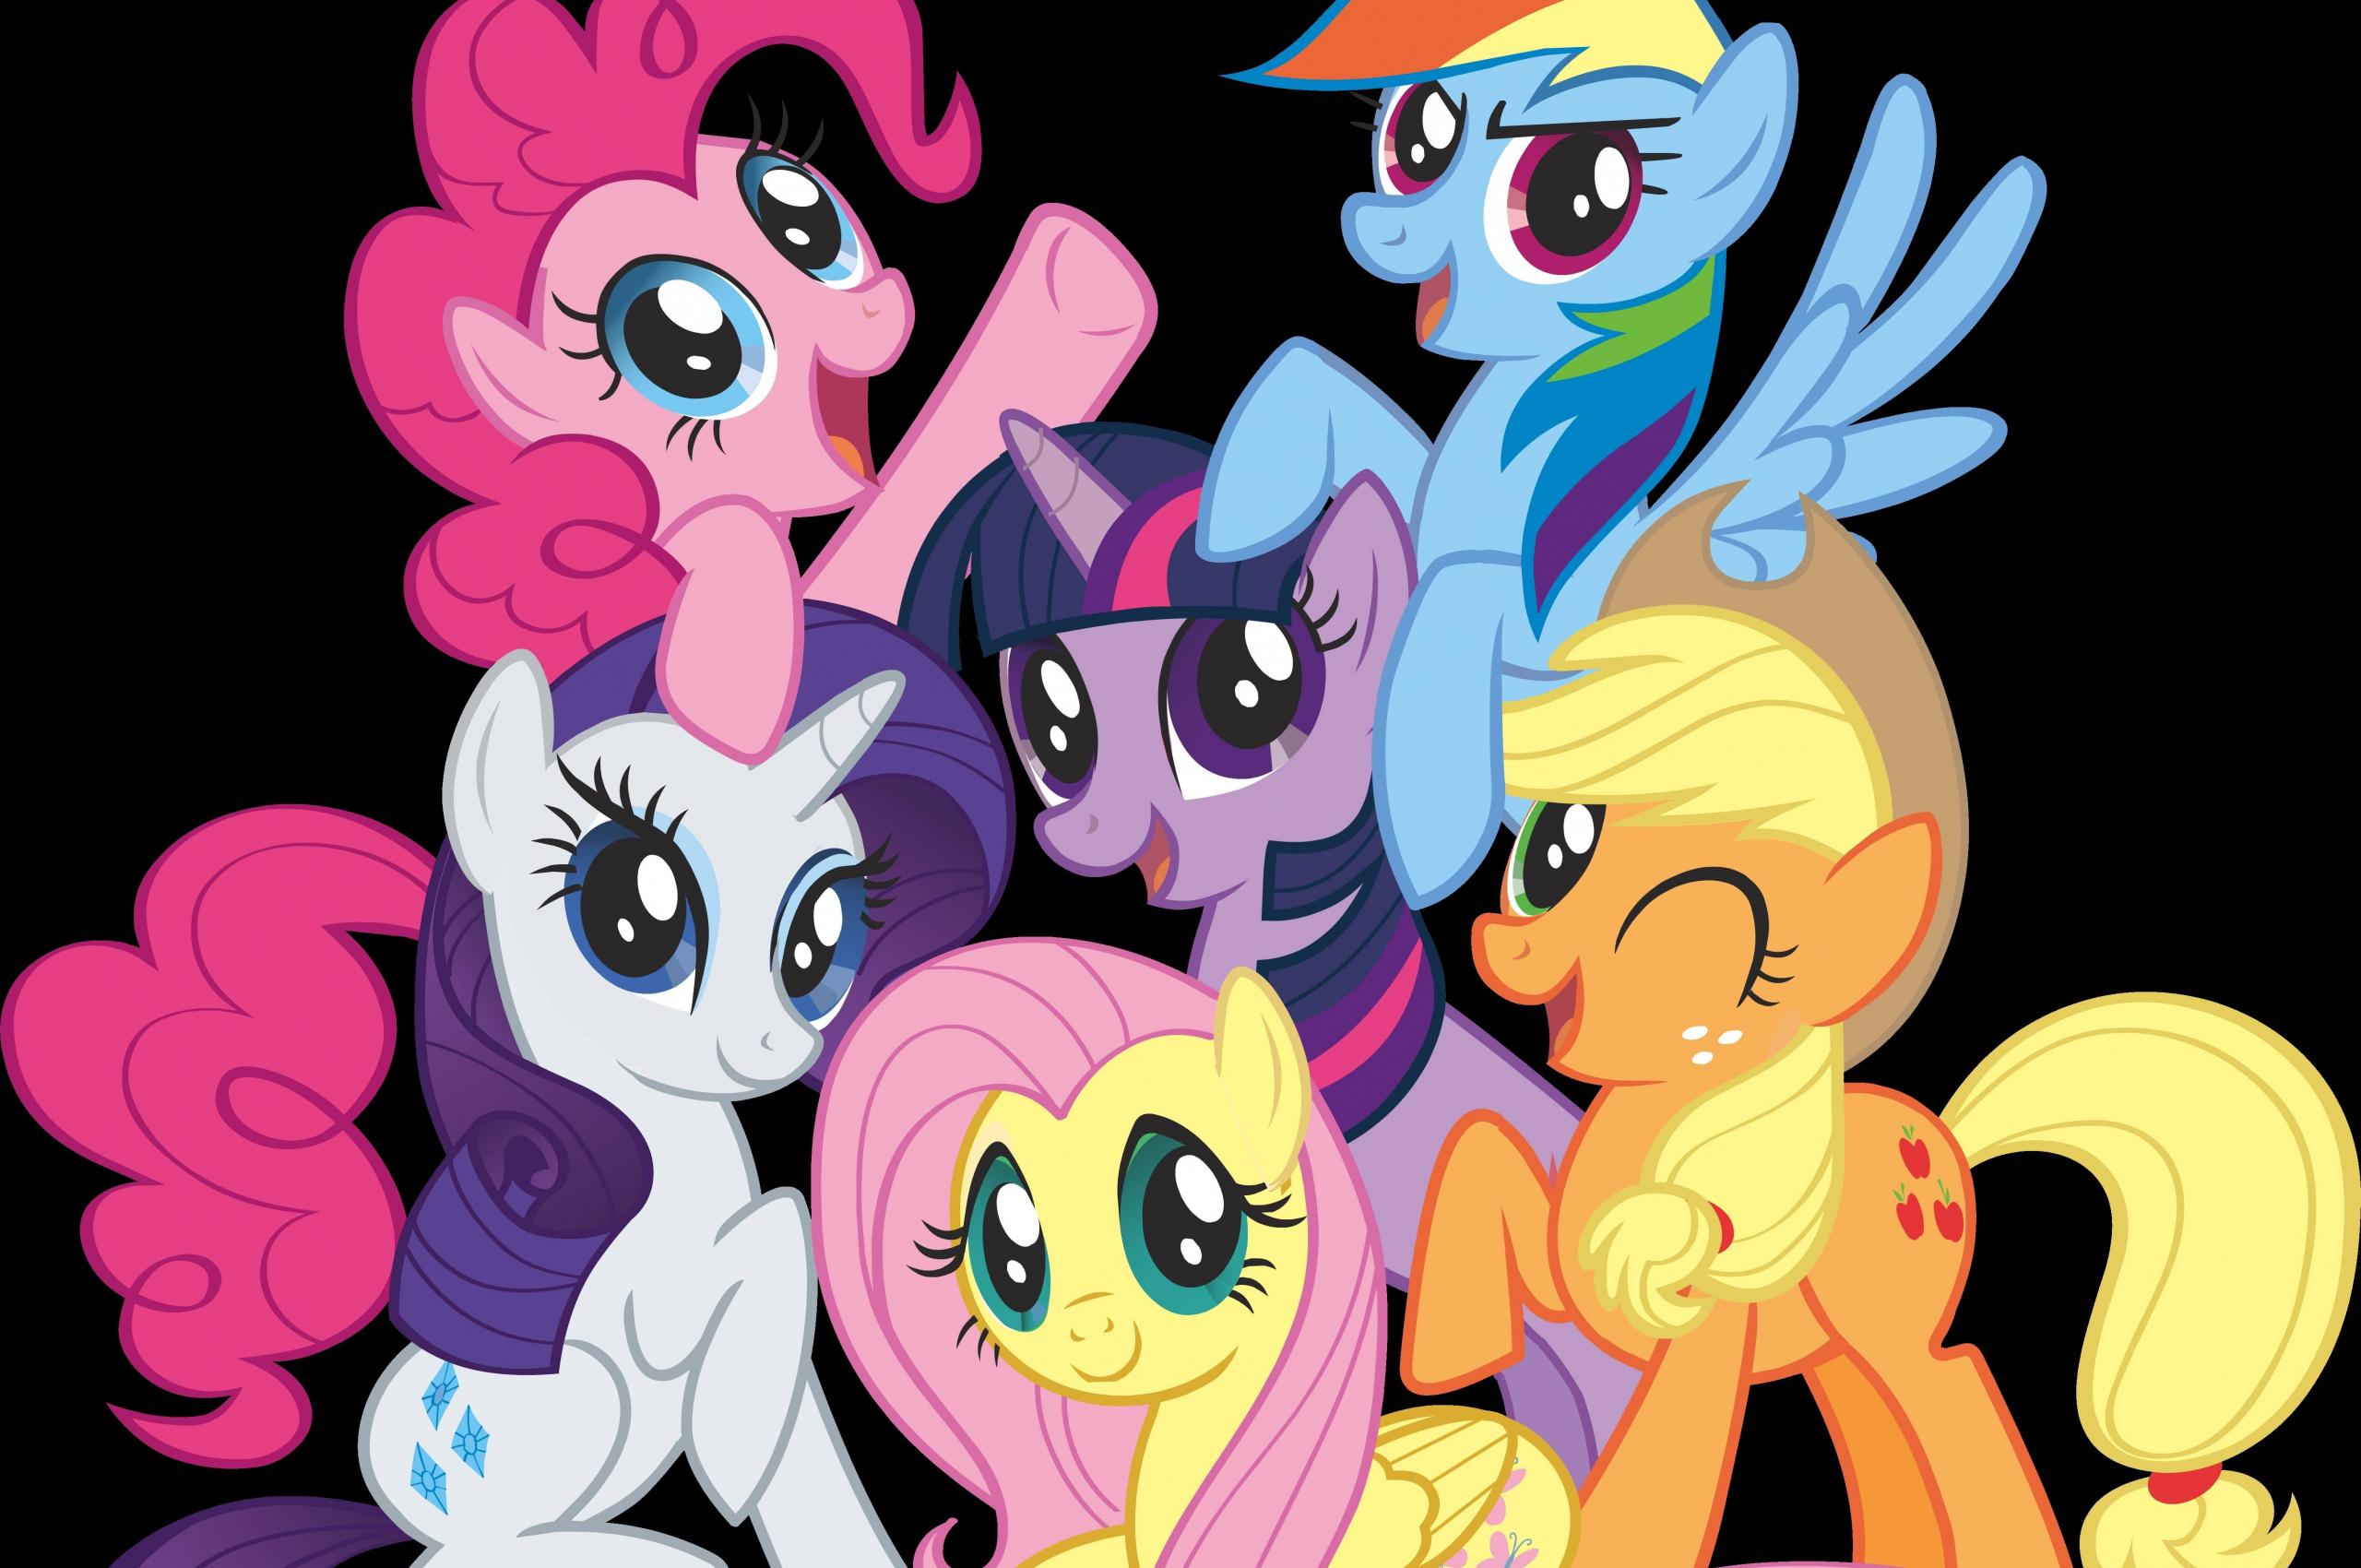 Free Download My Little Pony Android Wallpapers 5697x4507 For